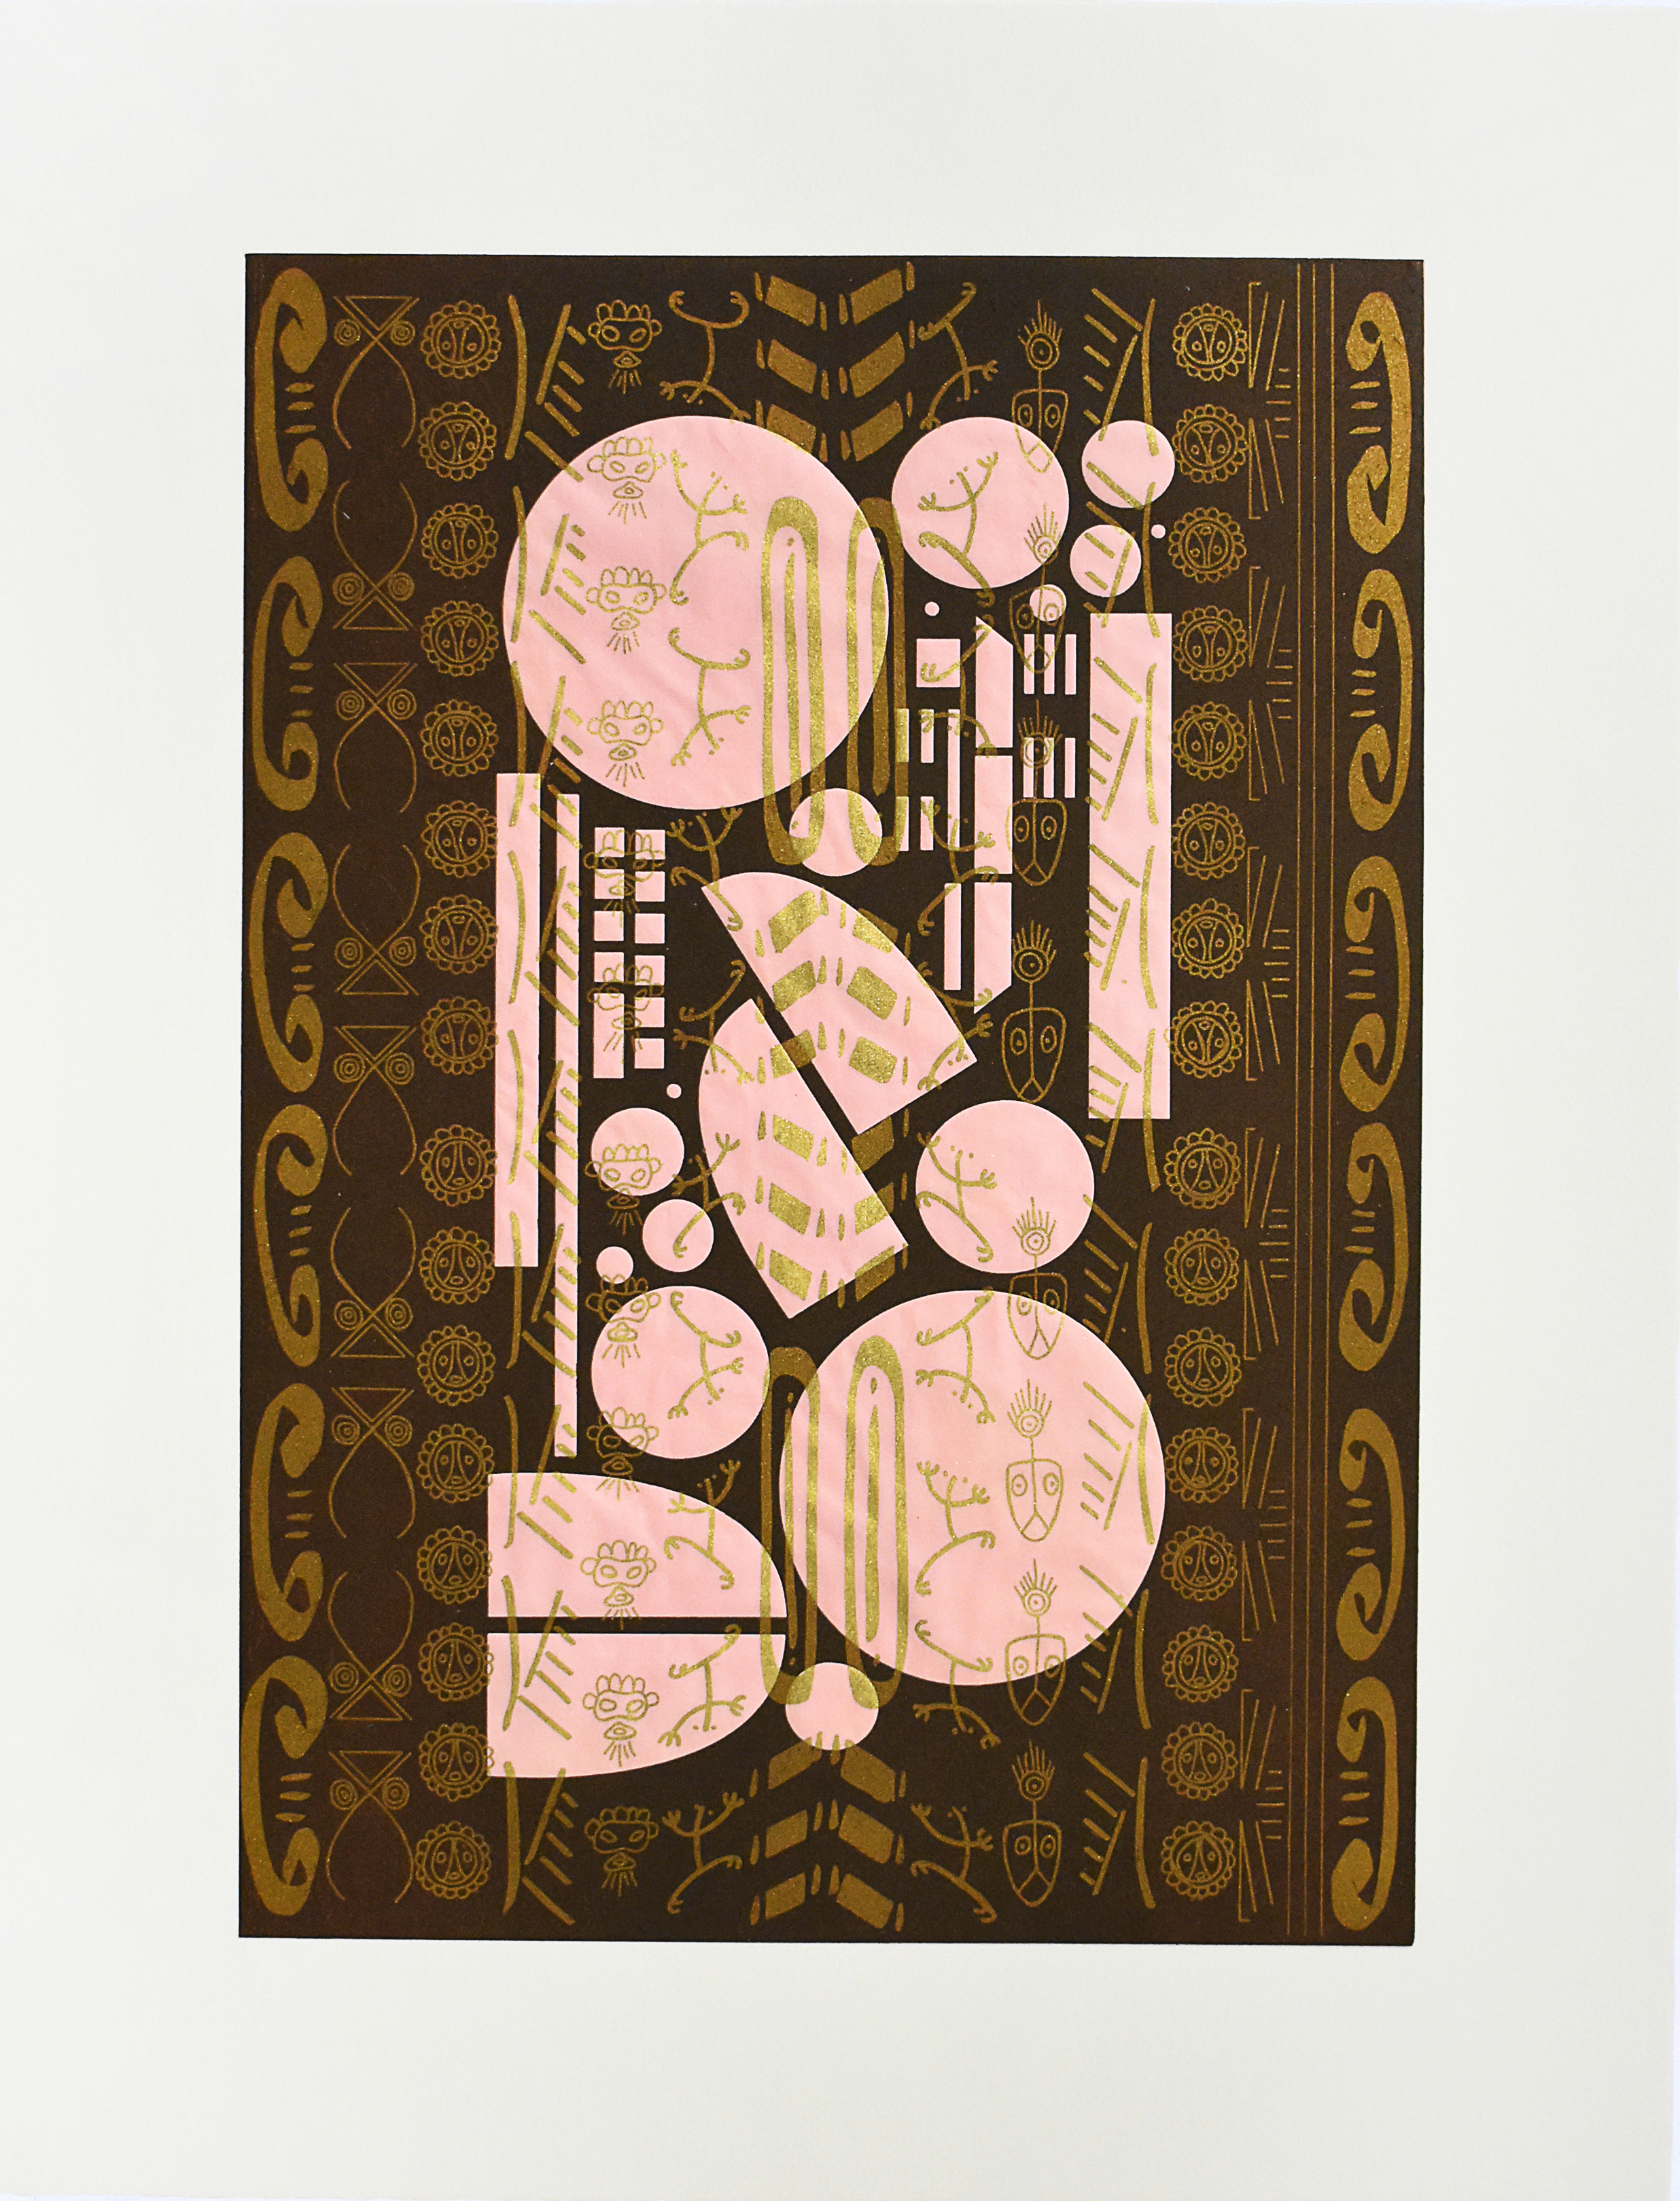 Glendalys Medina  BrownPinkTaínoBlackGold  2018  Photolithograph printed in gold ink on pink Yatsuo paper, flocked with gold pigment. Overprinted with brown relief roll from laser cut plexiglass; 26 x 20 in. Edition: 10